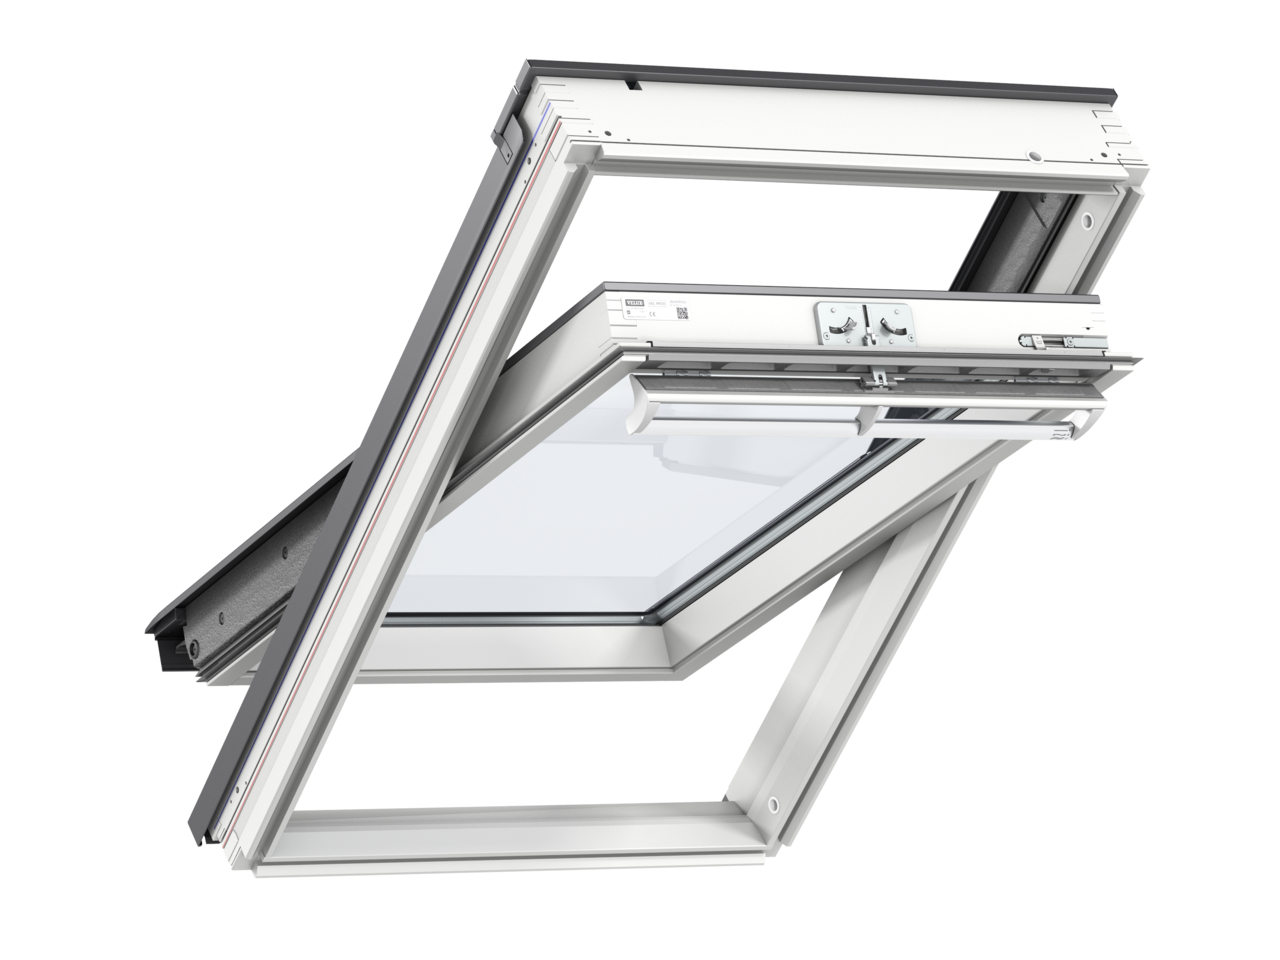 Velux GGL CK04 550 x 980mm Centre Pivot Standard 70Pane Roof Window - White Painted